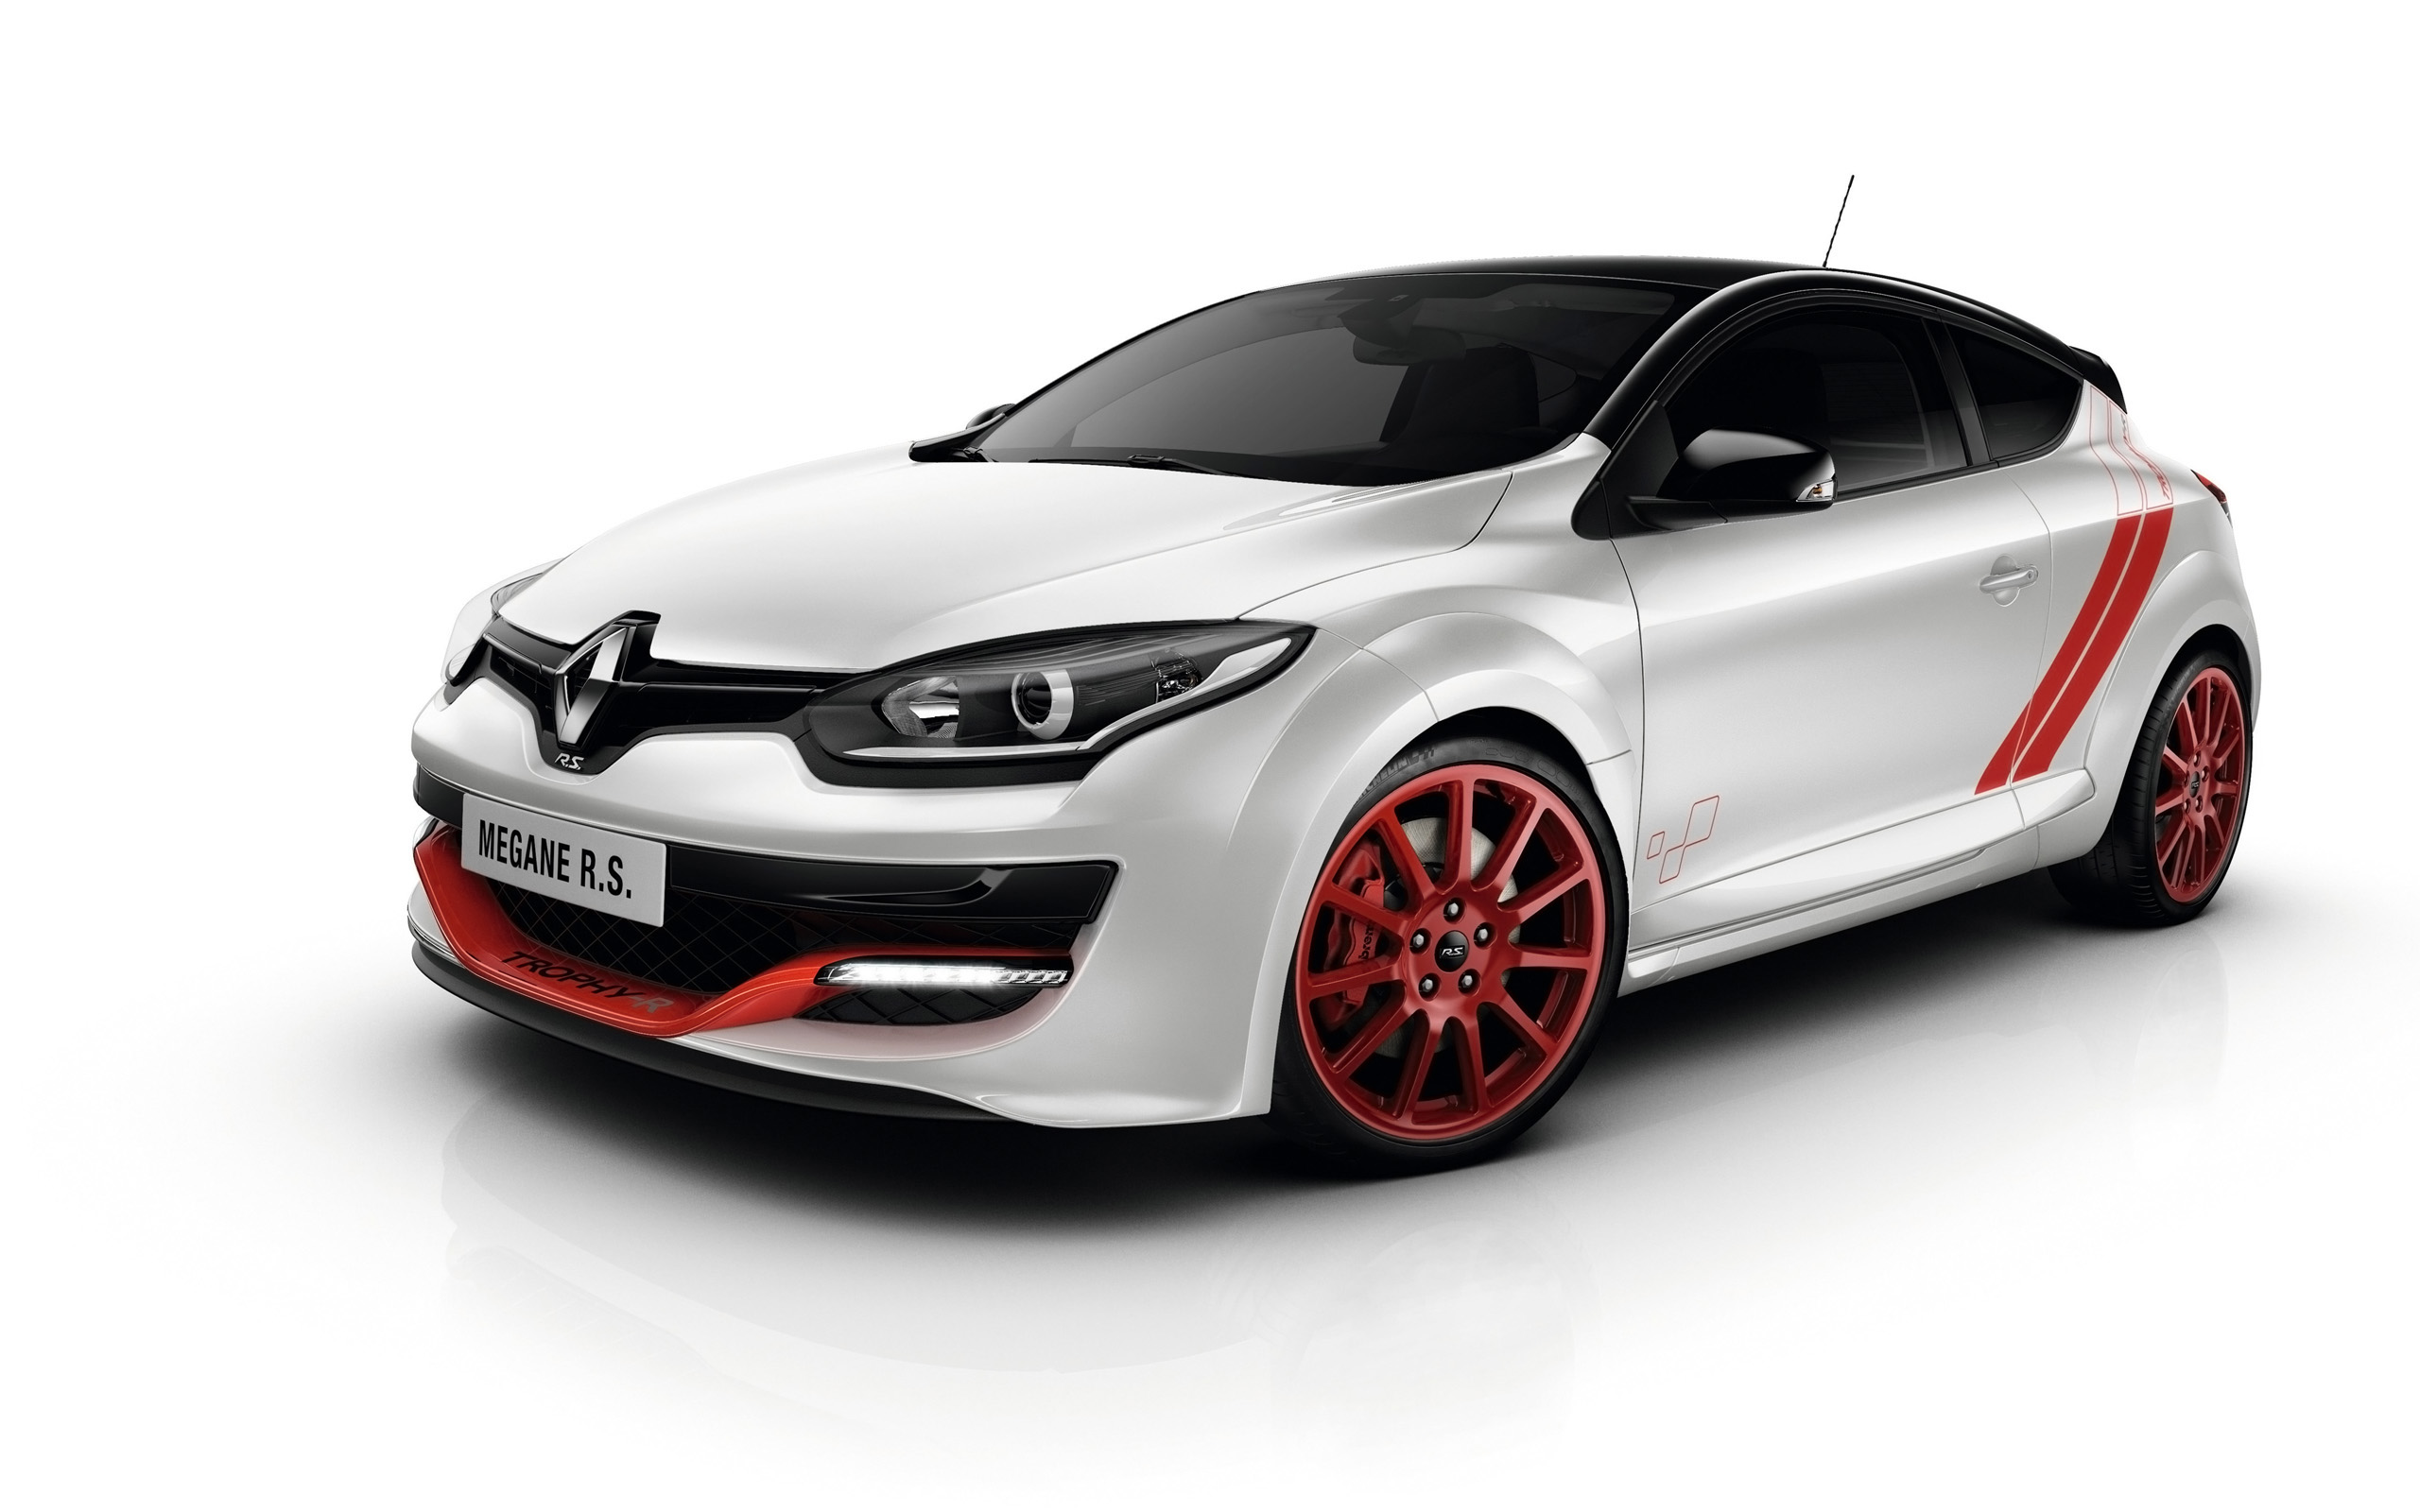 renault megane rs 275 trophy r 2014 wallpaper hd car wallpapers id 4639. Black Bedroom Furniture Sets. Home Design Ideas